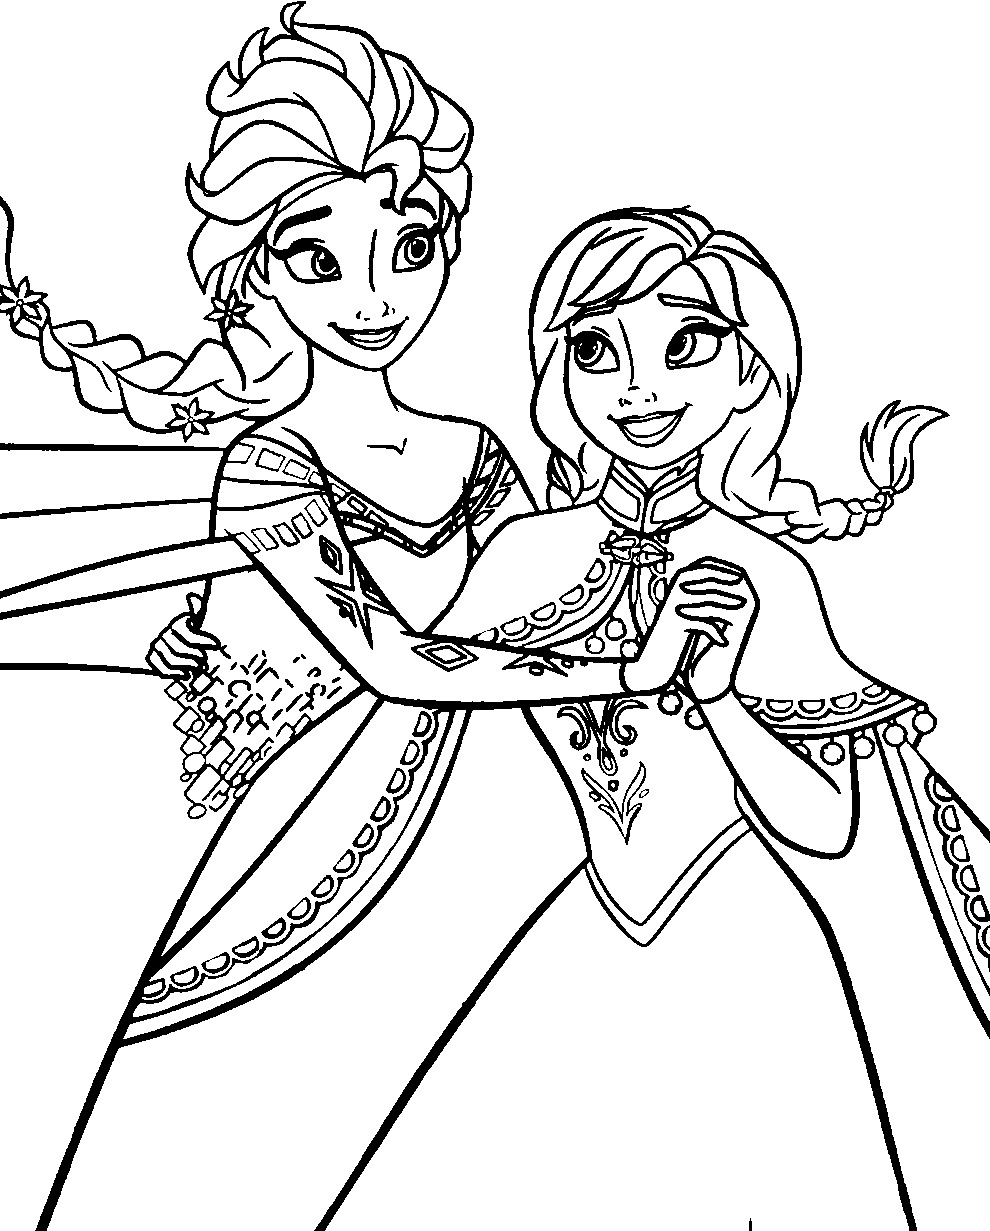 frozen cartoon characters coloring pages - photo#29